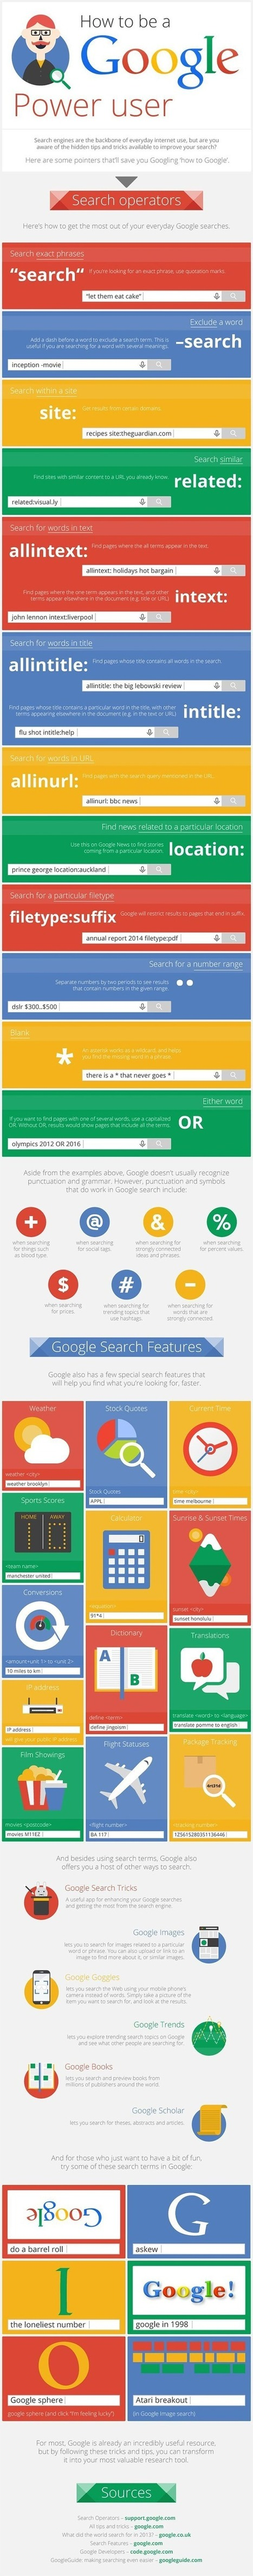 46 Hidden Tips and Tricks to Use Google Search Like a Boss: Infographic | Wepyirang | Scoop.it